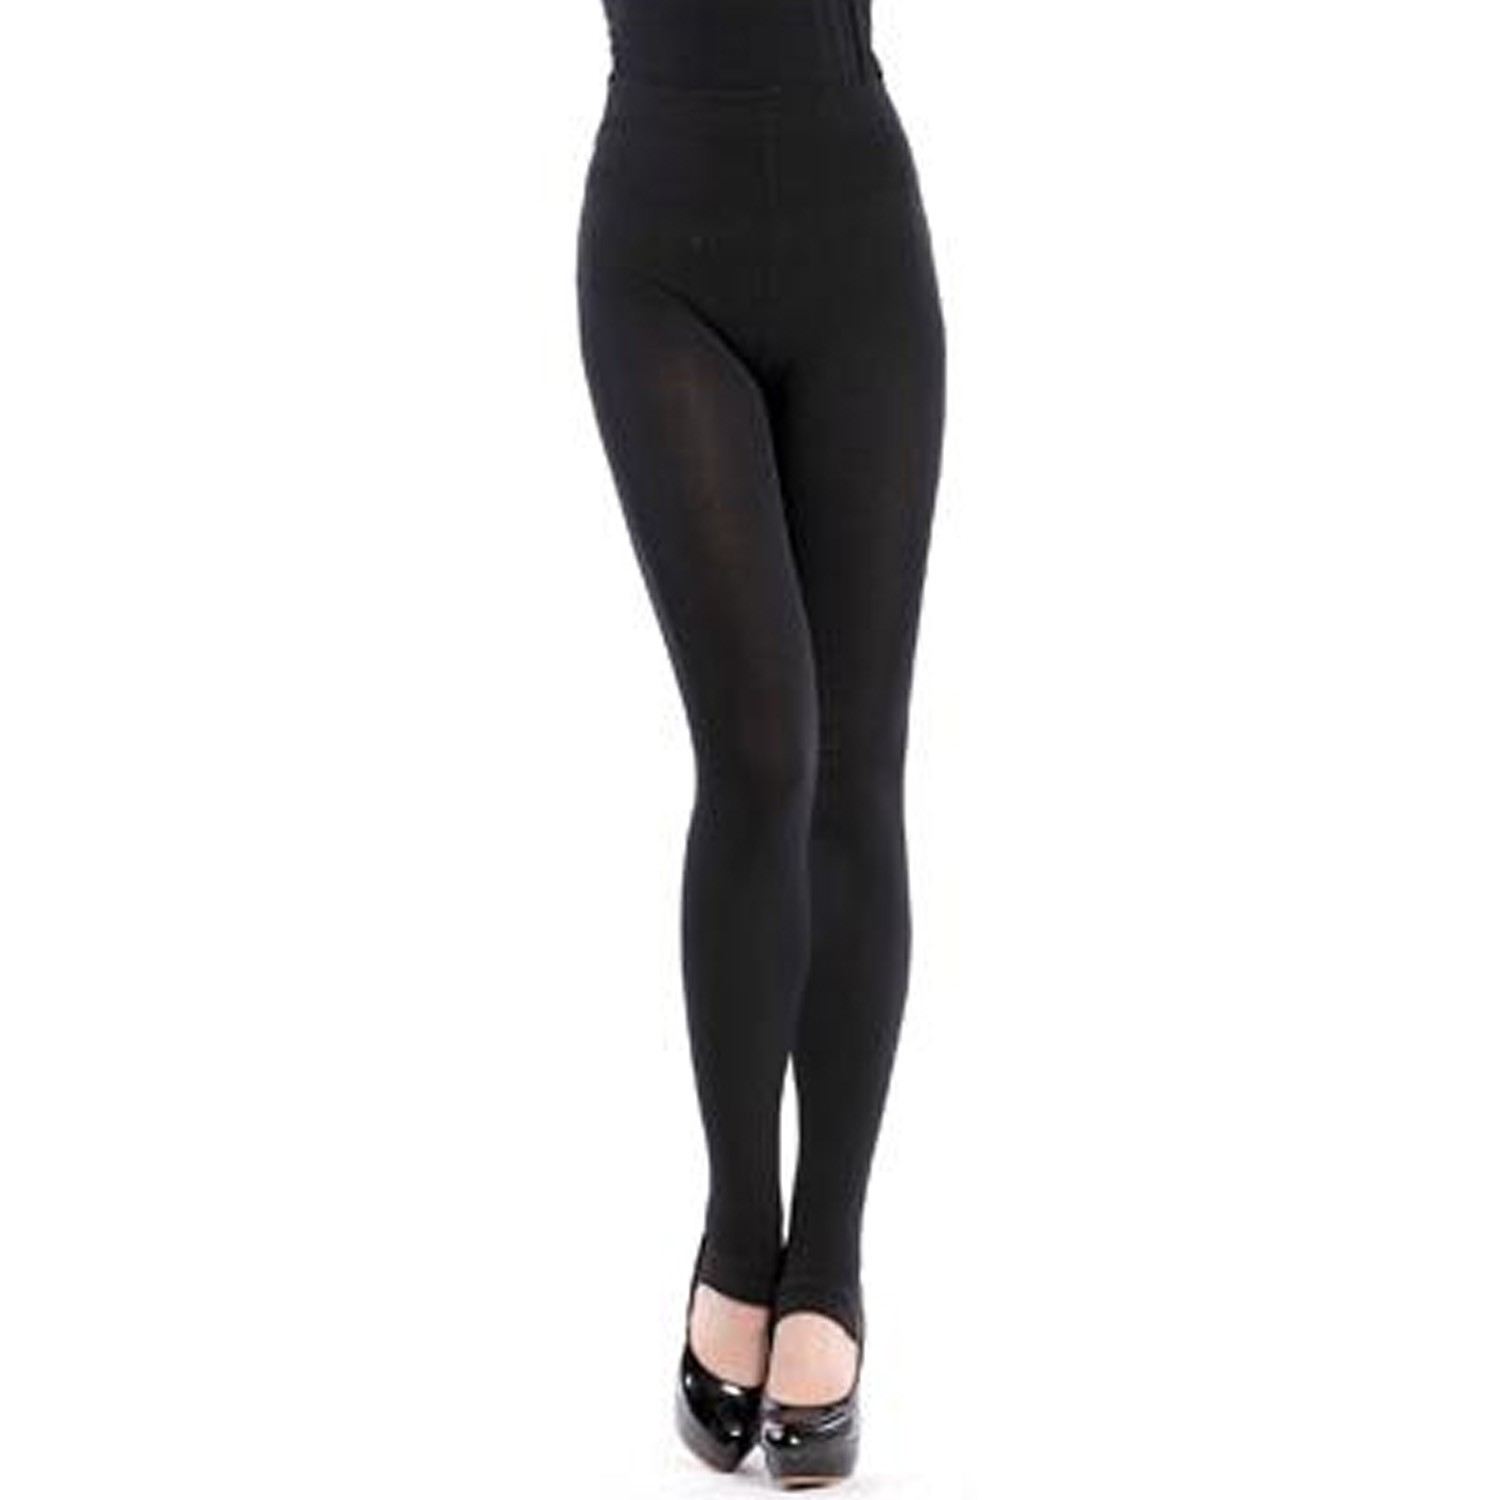 Cotton Stirrup Leggings - G7053#